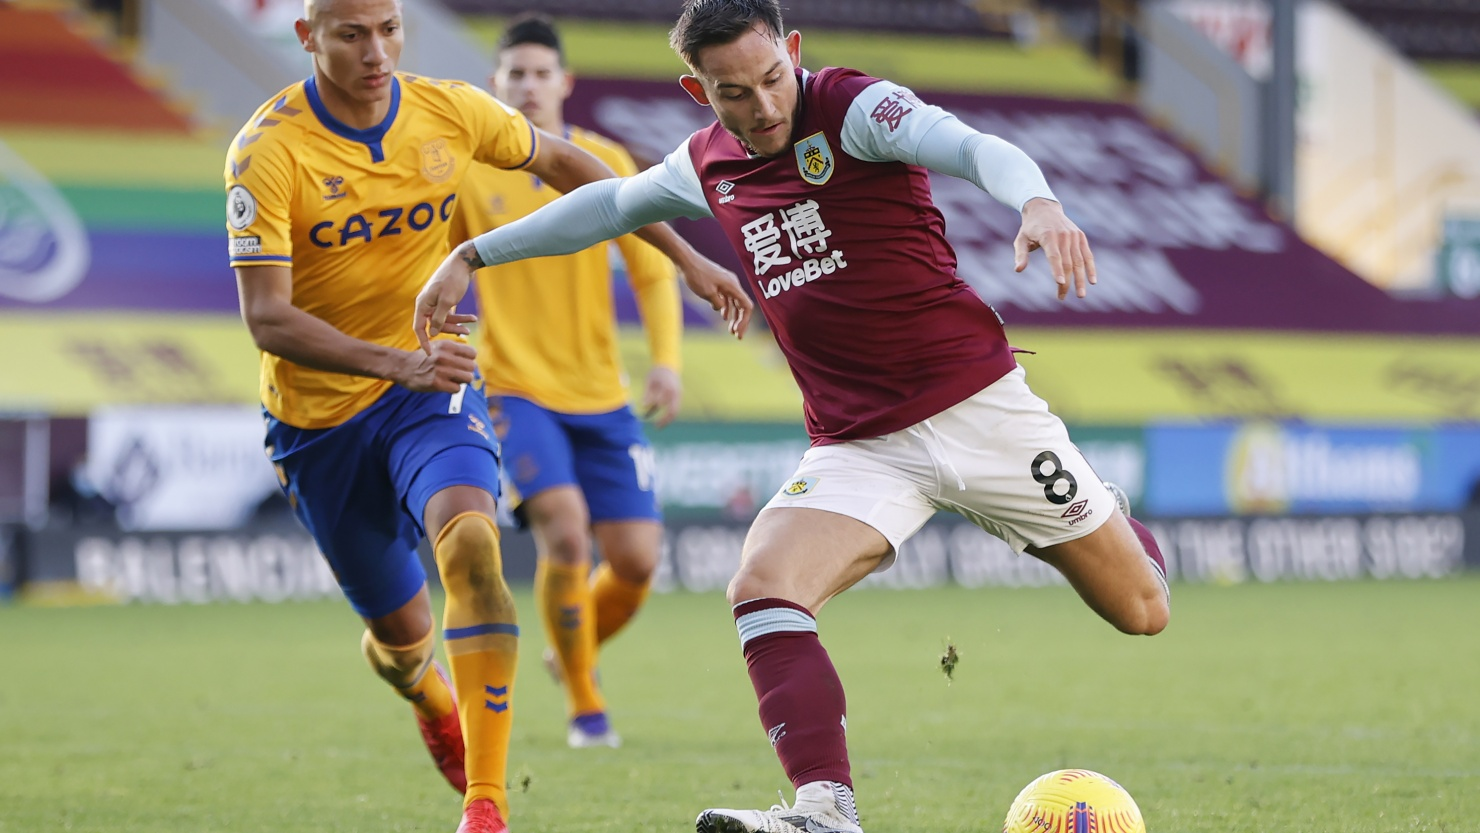 Brownhill Backs Burnley Experience